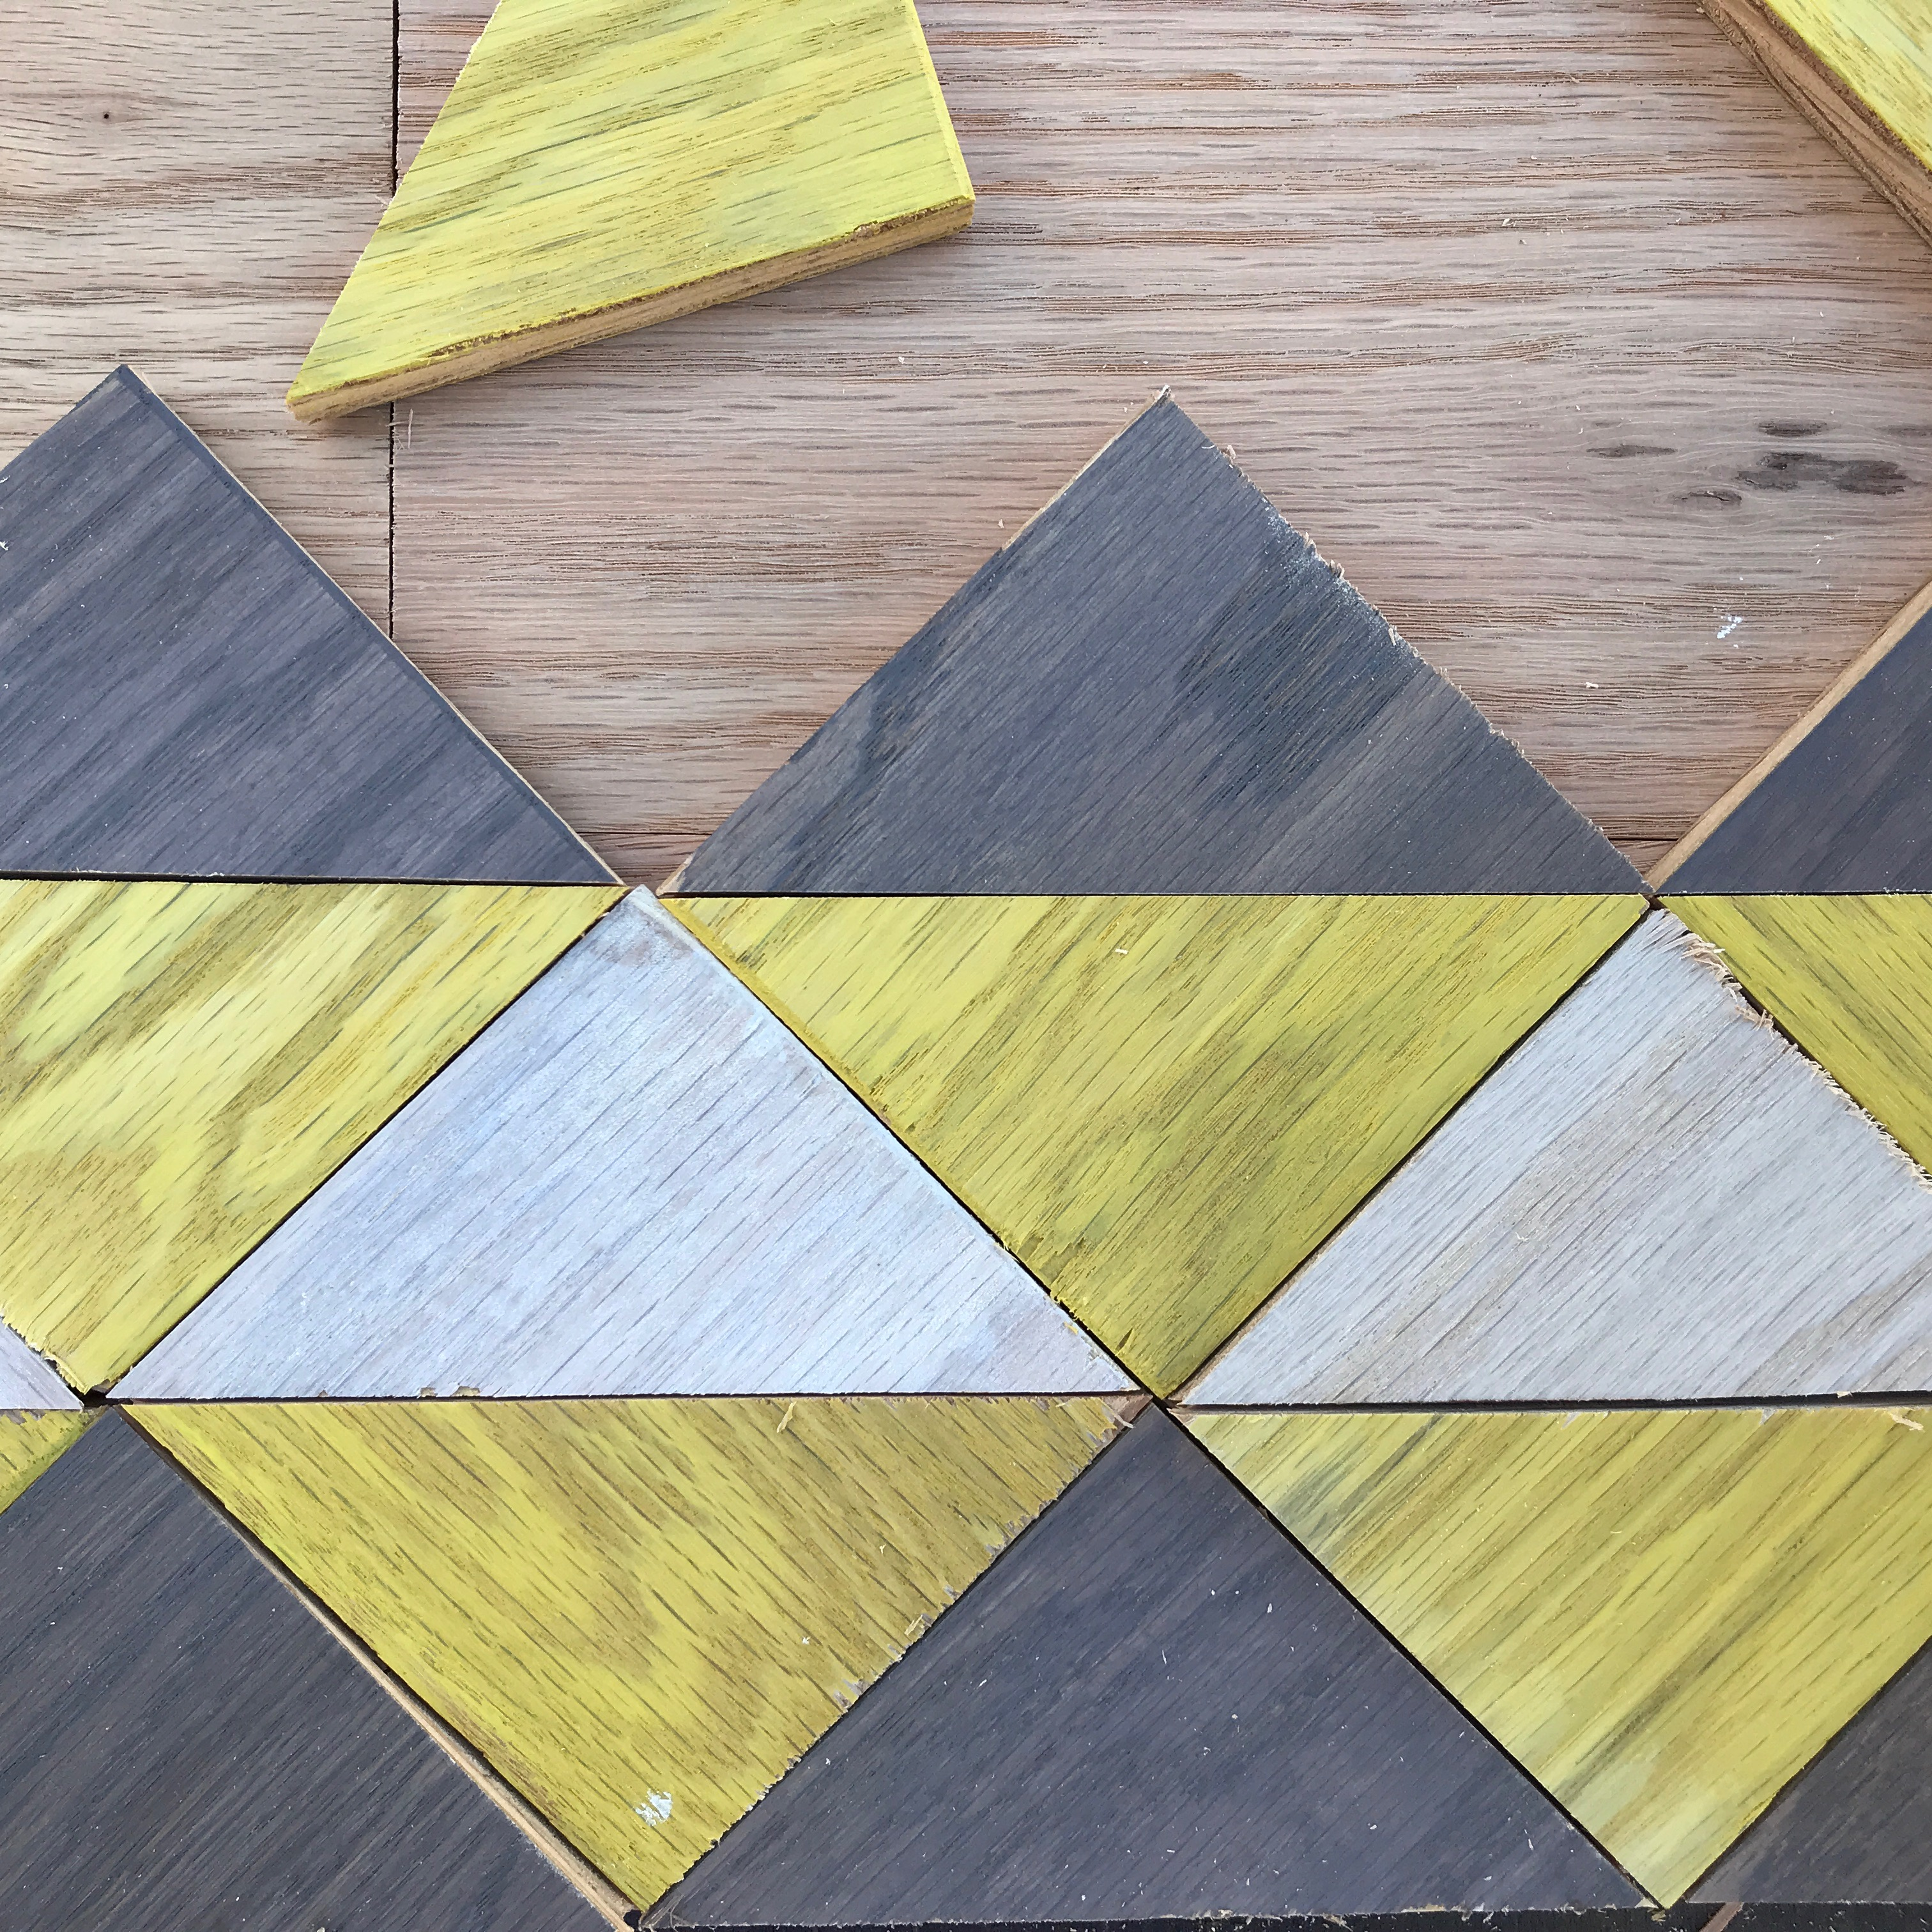 6 MyFixitUpLife_Minwax_wood_tray_laying out triangles